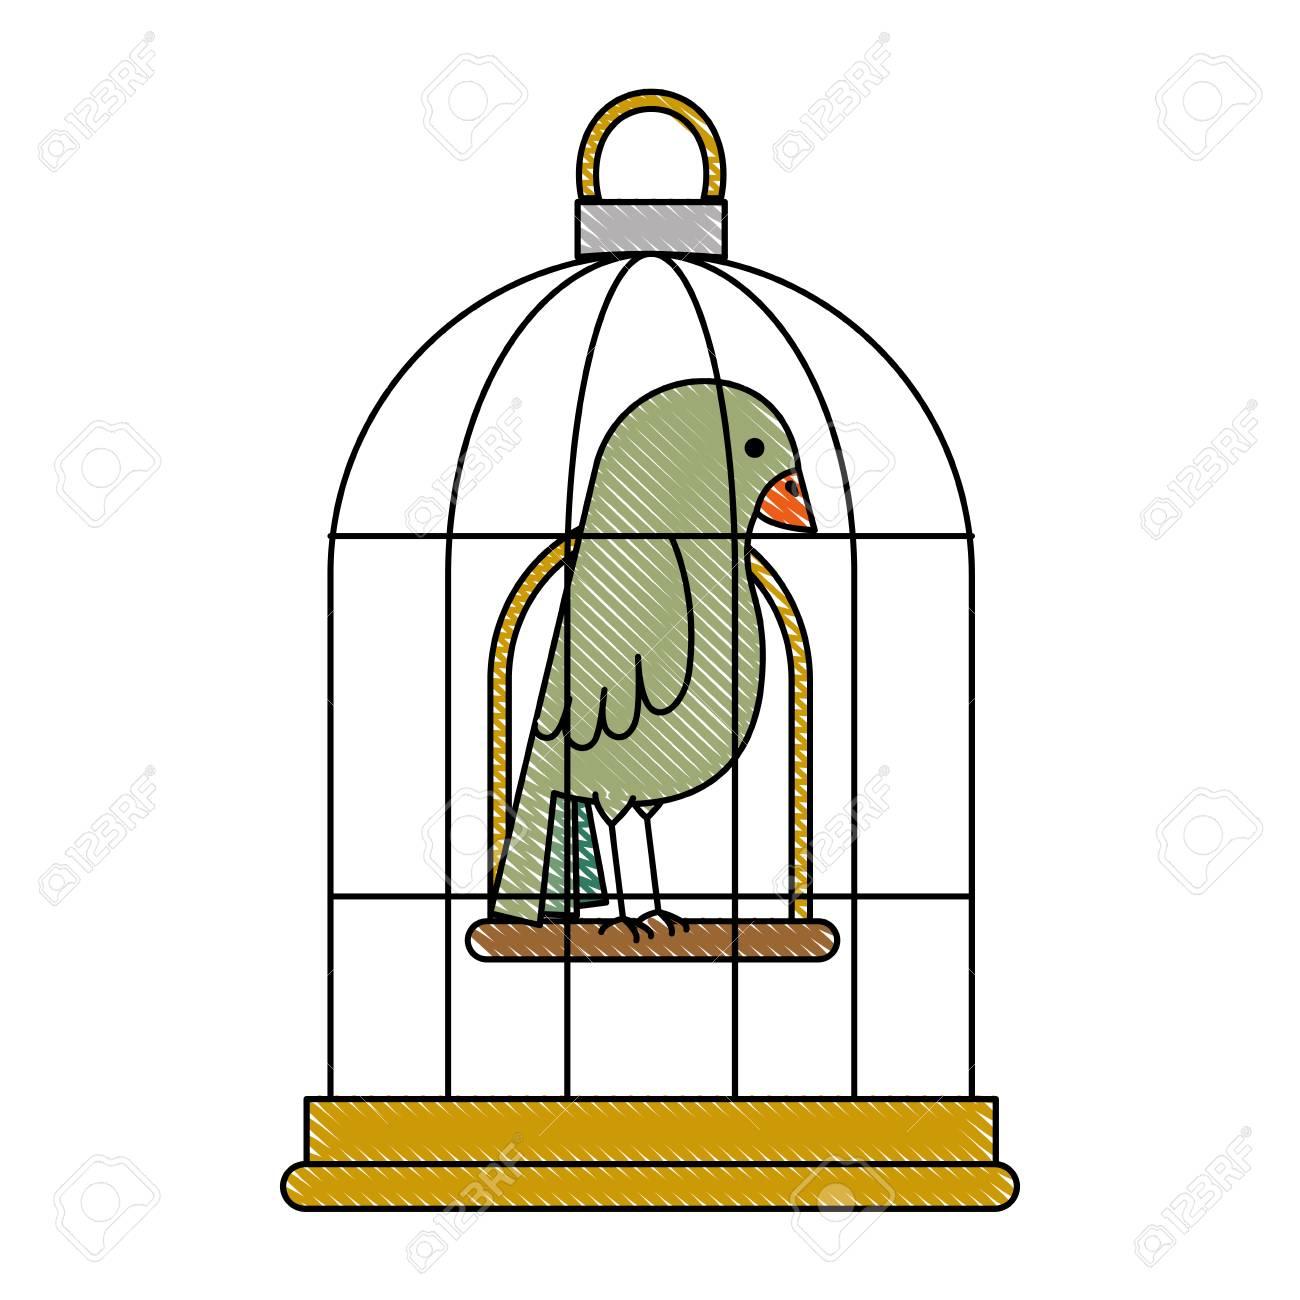 cute bird in cage vector illustration design royalty free cliparts